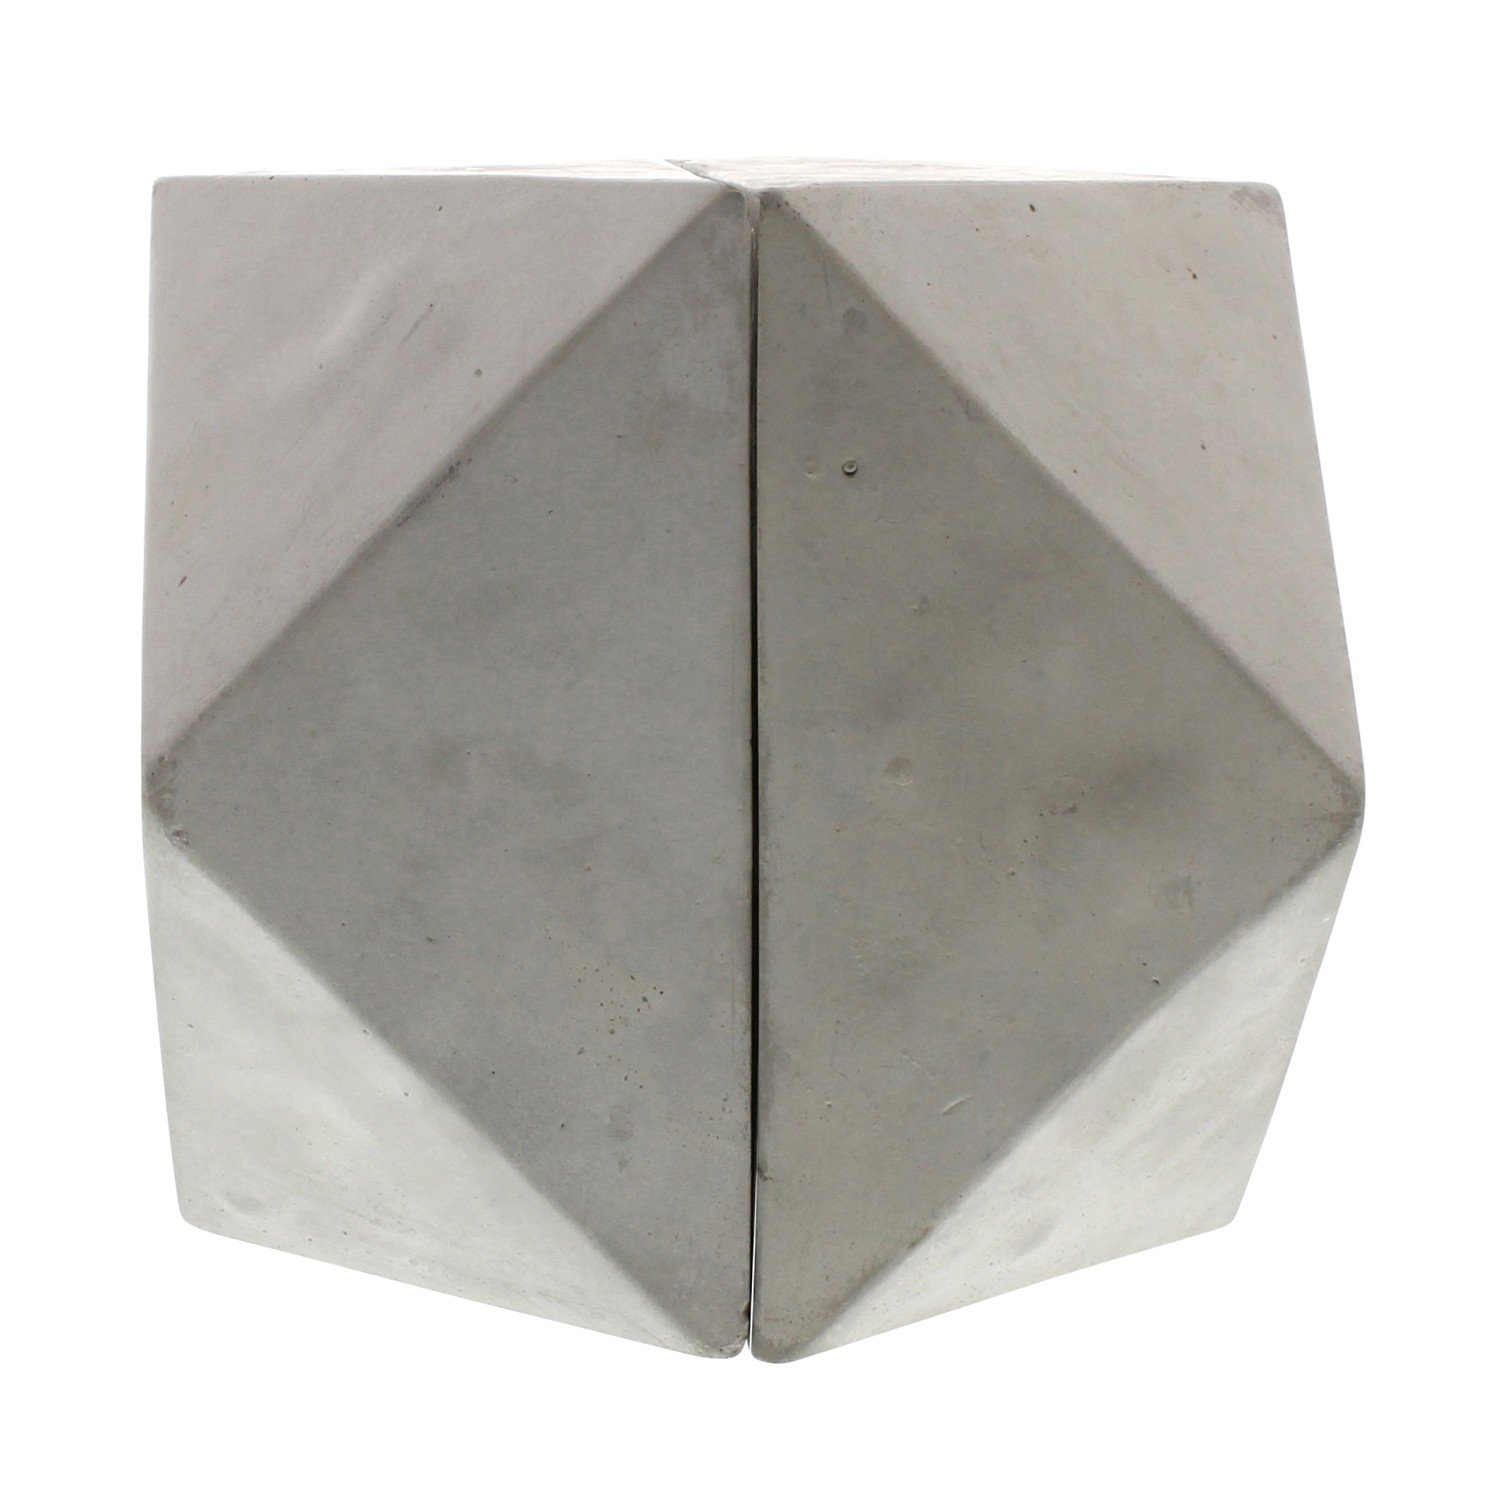 Geometric Modern Cement Faceted Cube Shape Book Ends | Minimalist Industrial by My Swanky Home